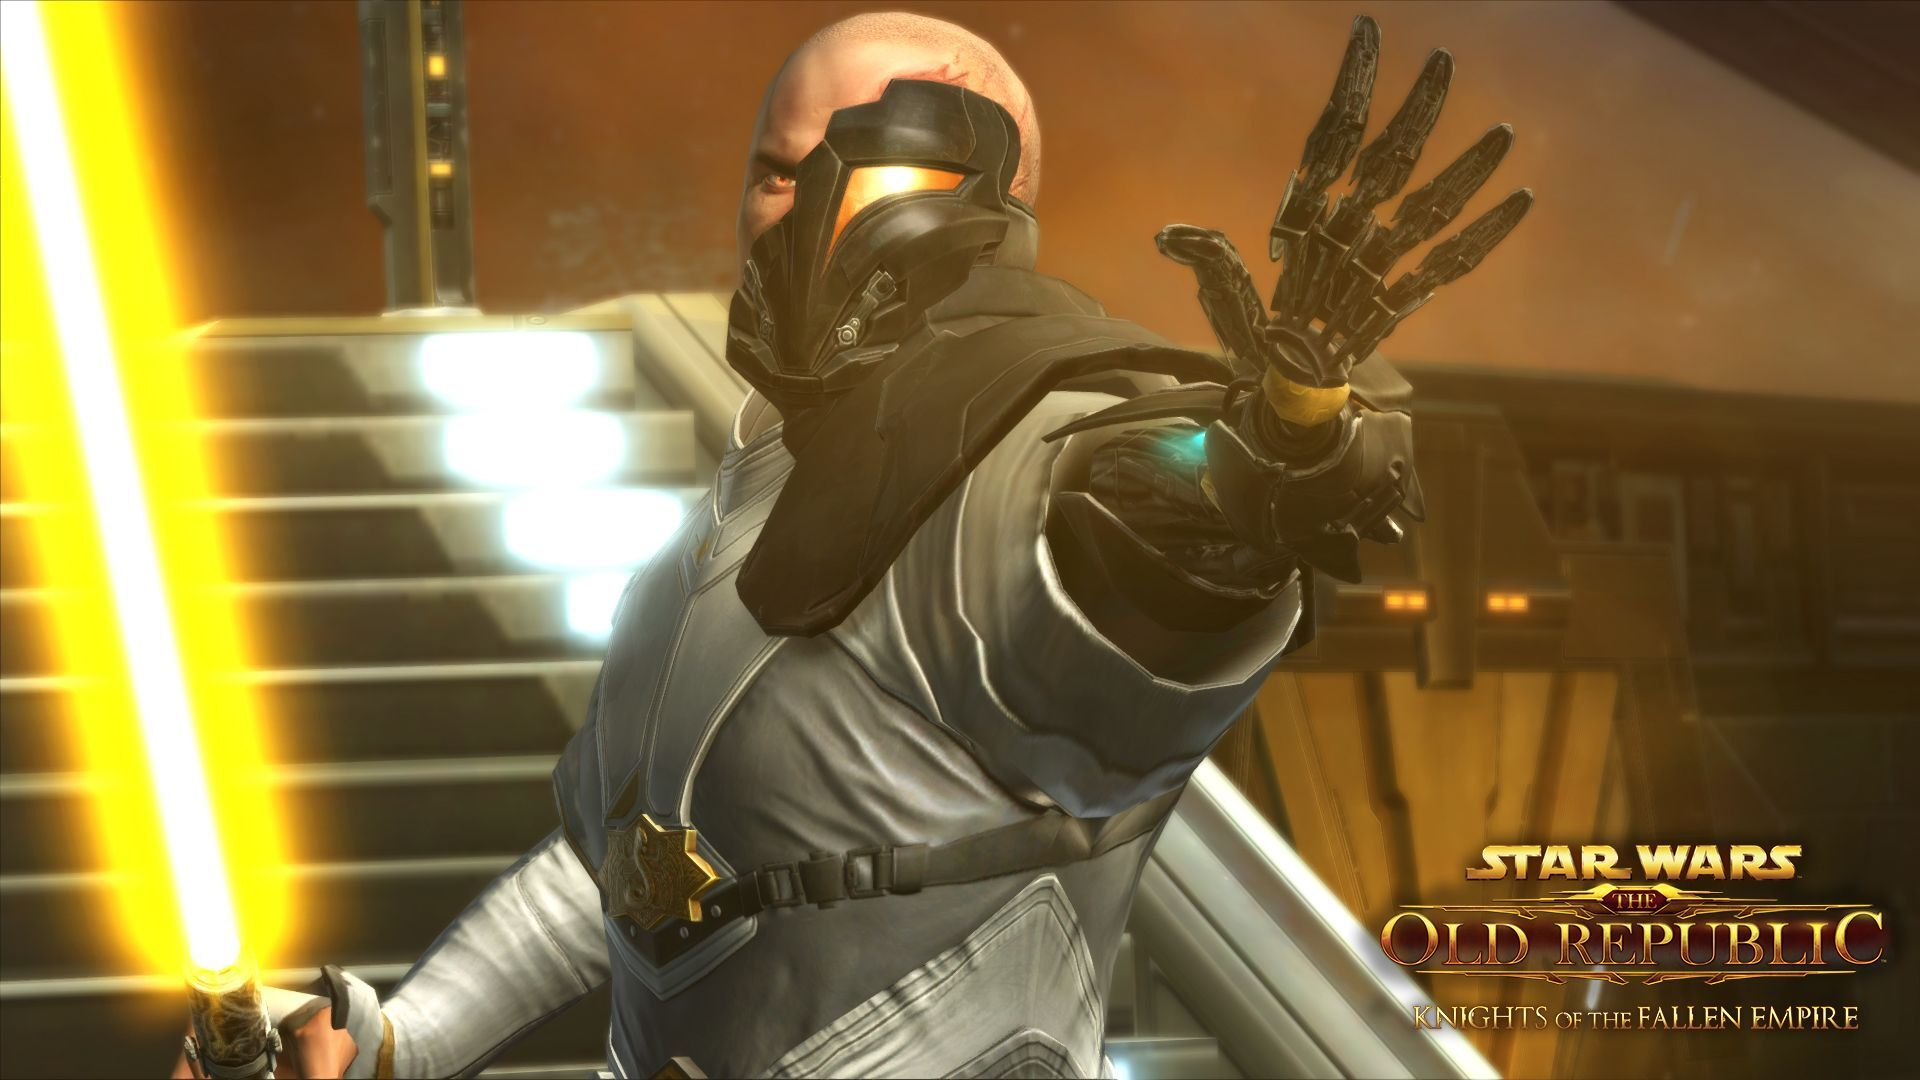 Star Wars could link The Mandalorian and the Knights of the Old Republic